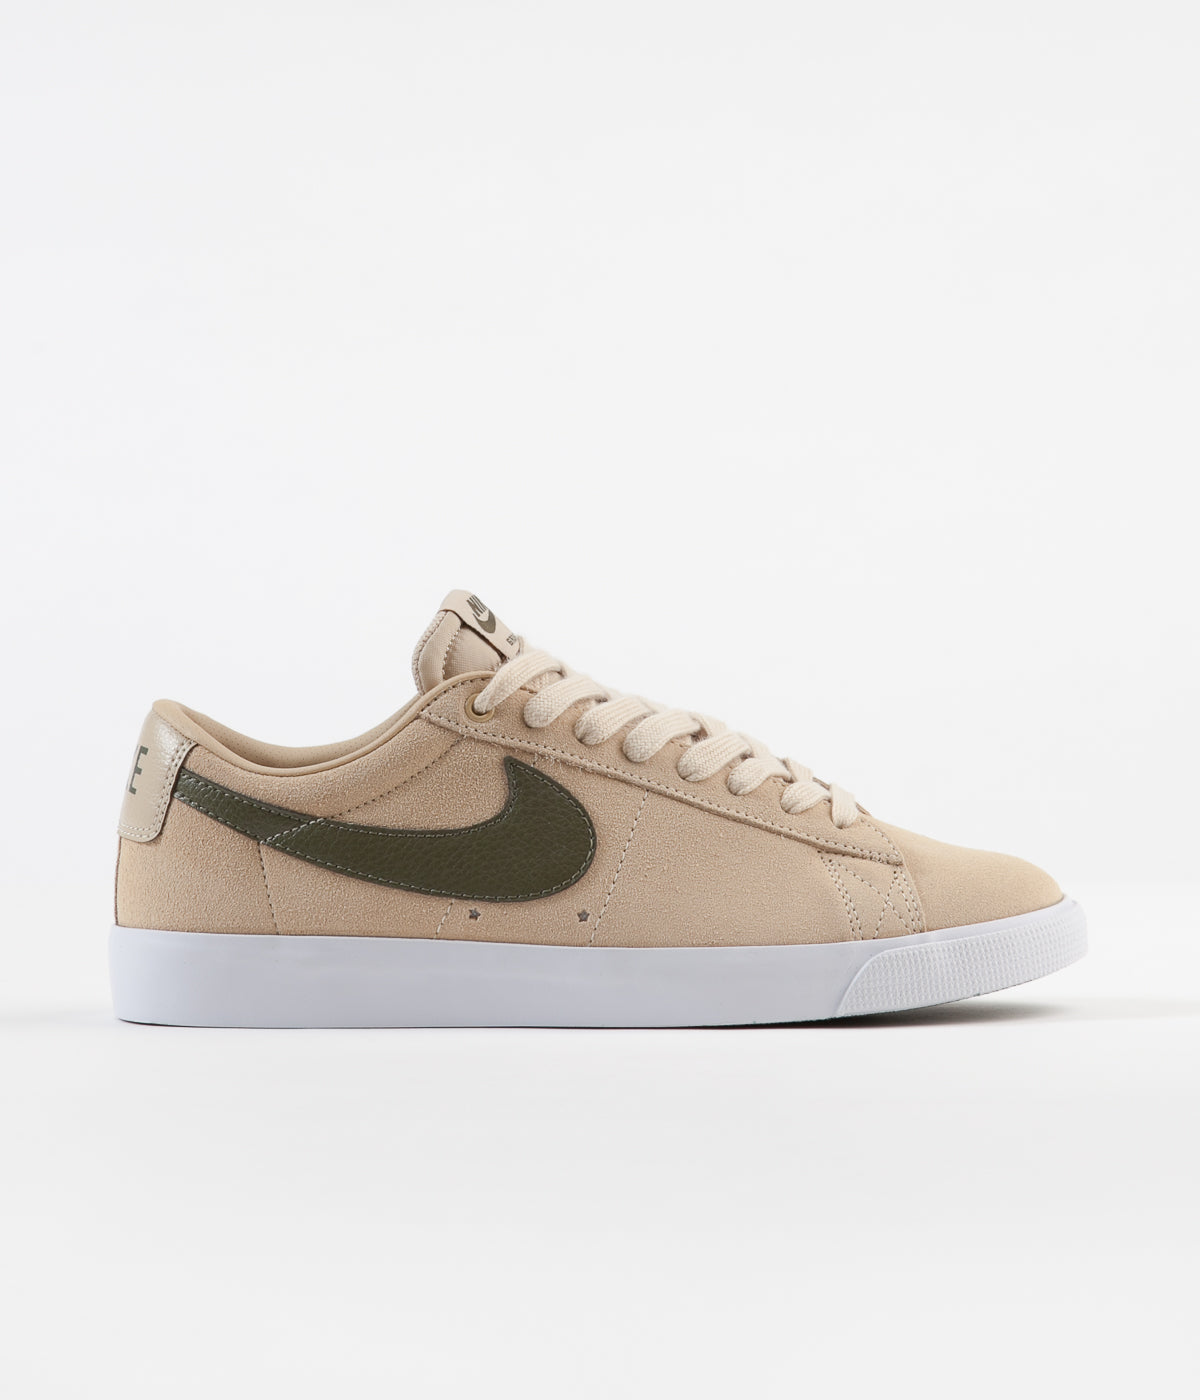 Nike SB Blazer Low GT Shoes - Desert Ore / Medium Olive